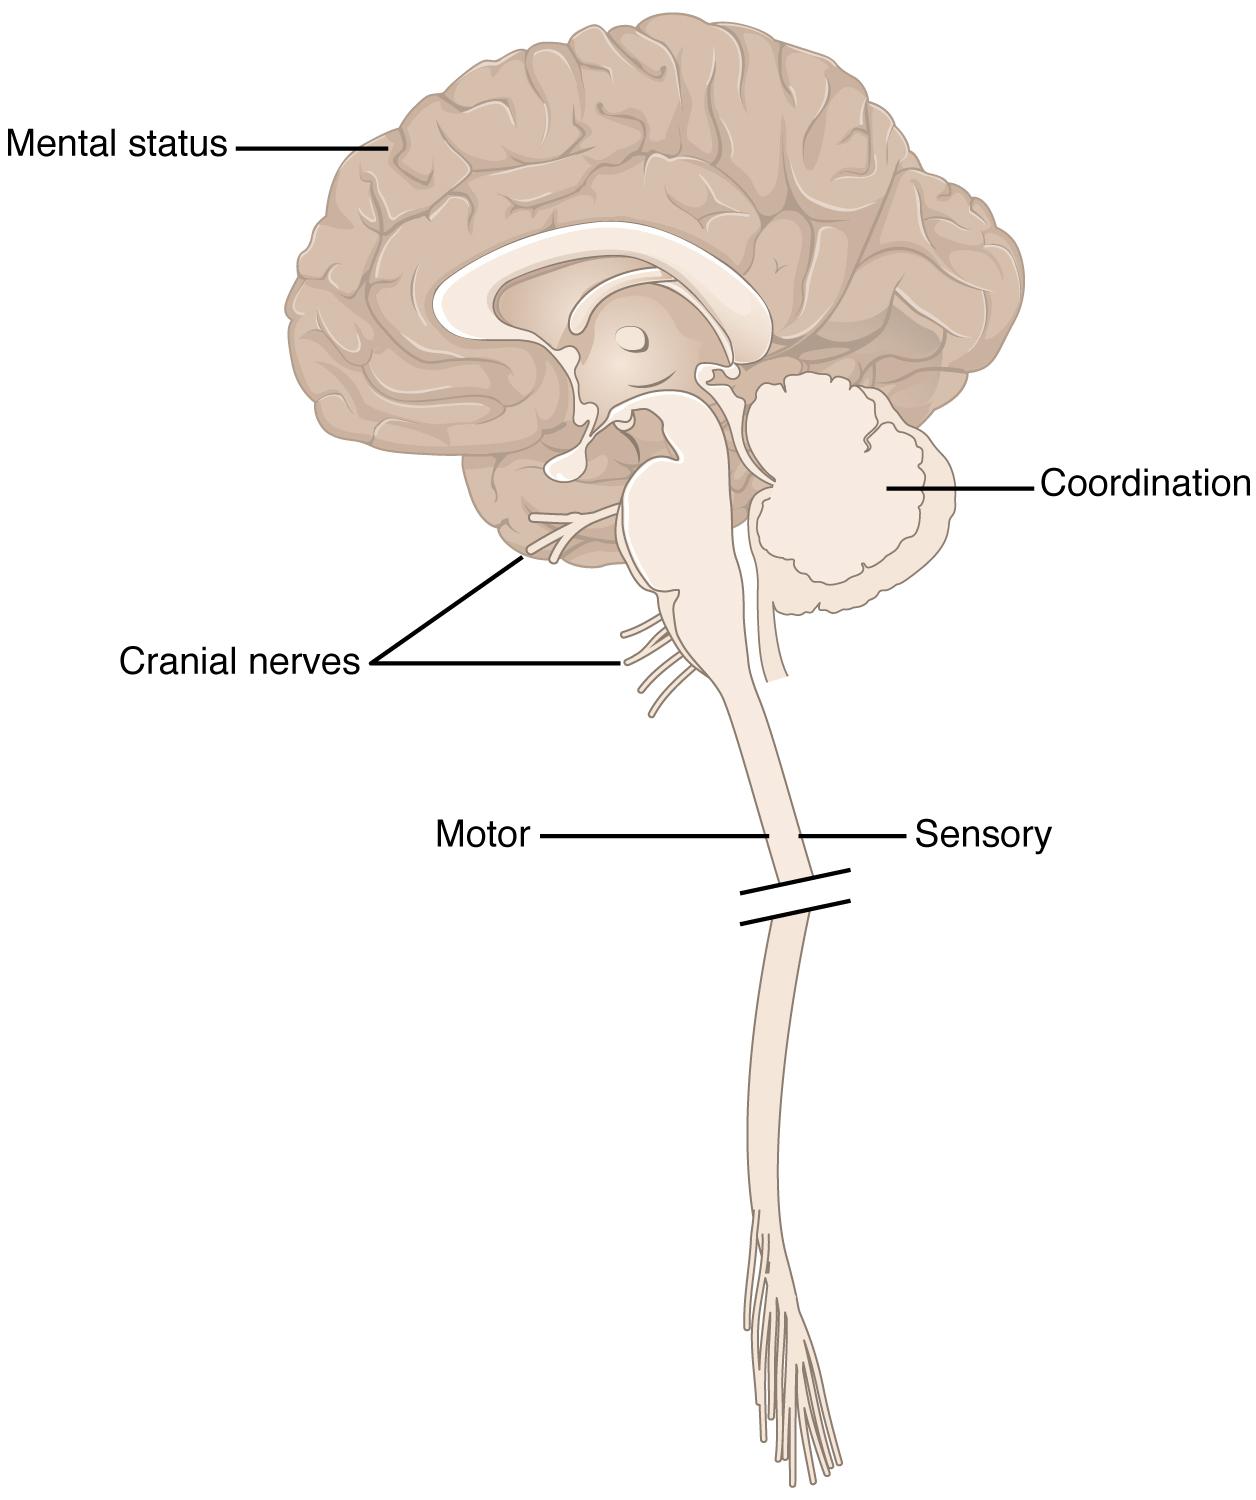 Overview of the Neurological Exam · Anatomy and Physiology